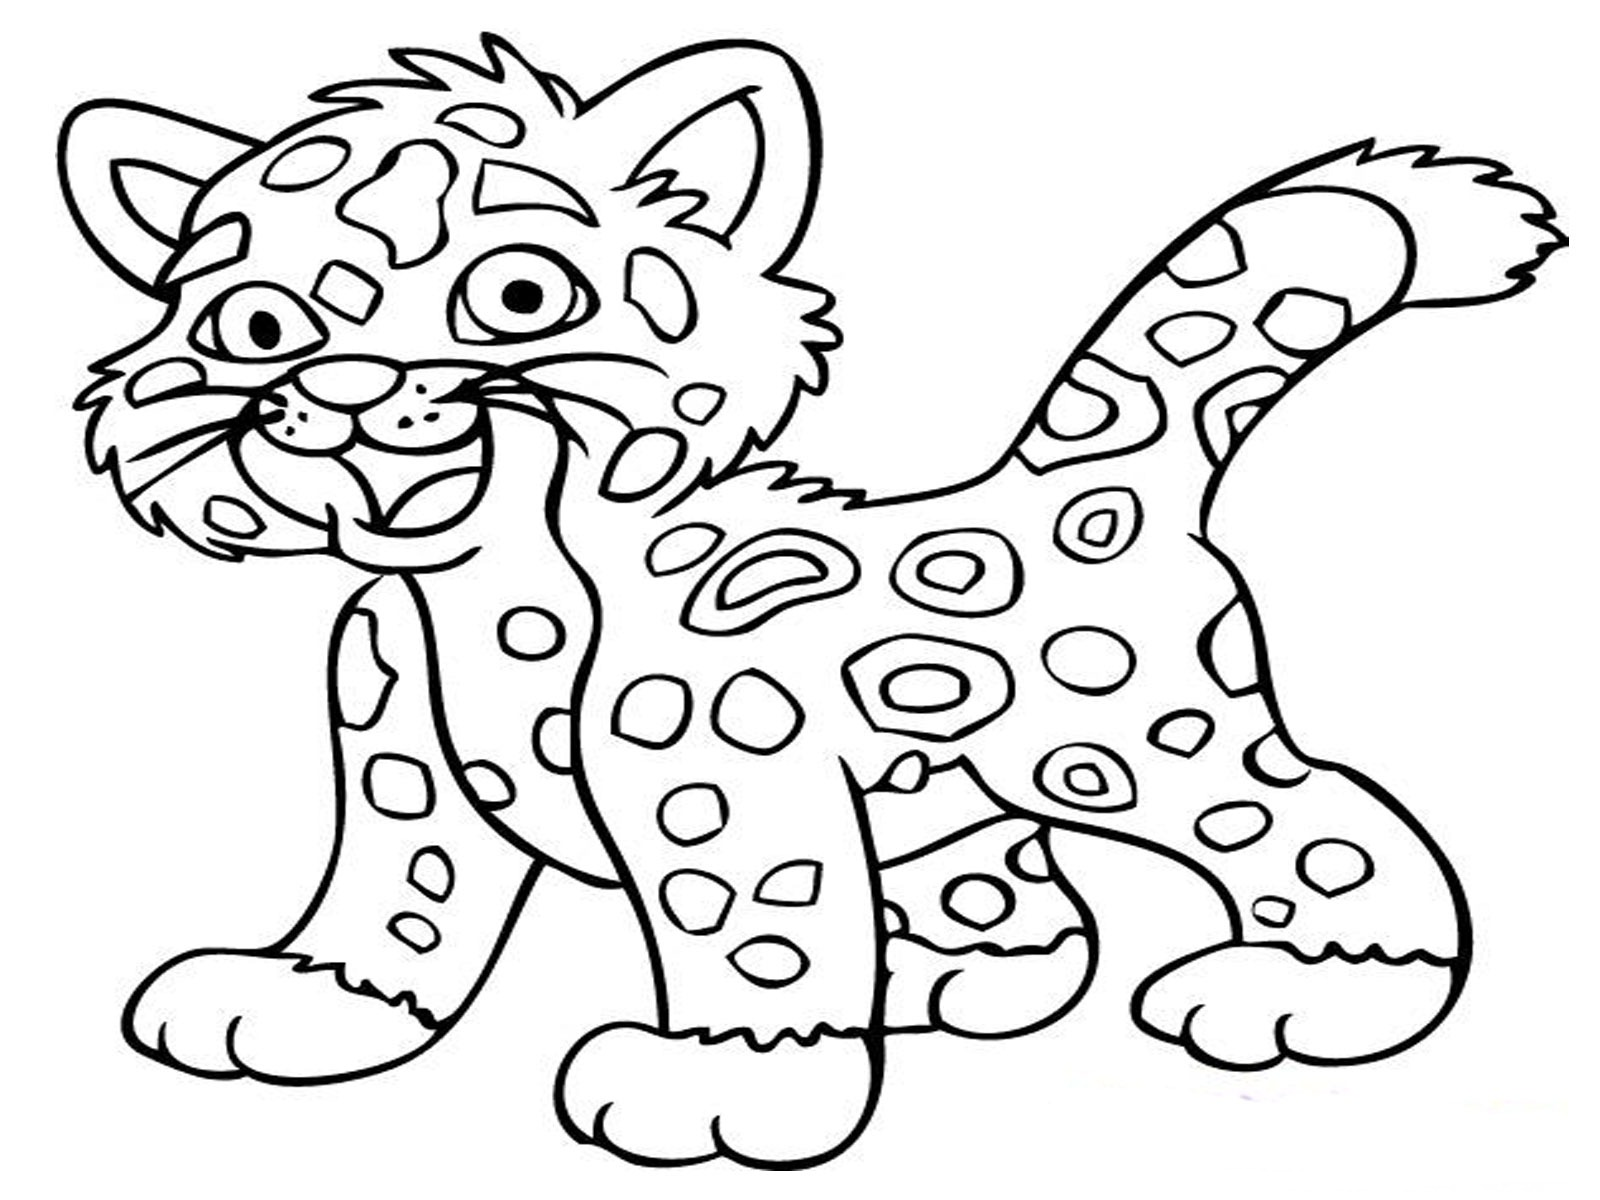 Animal Coloring Pages (9) - Coloring Kids